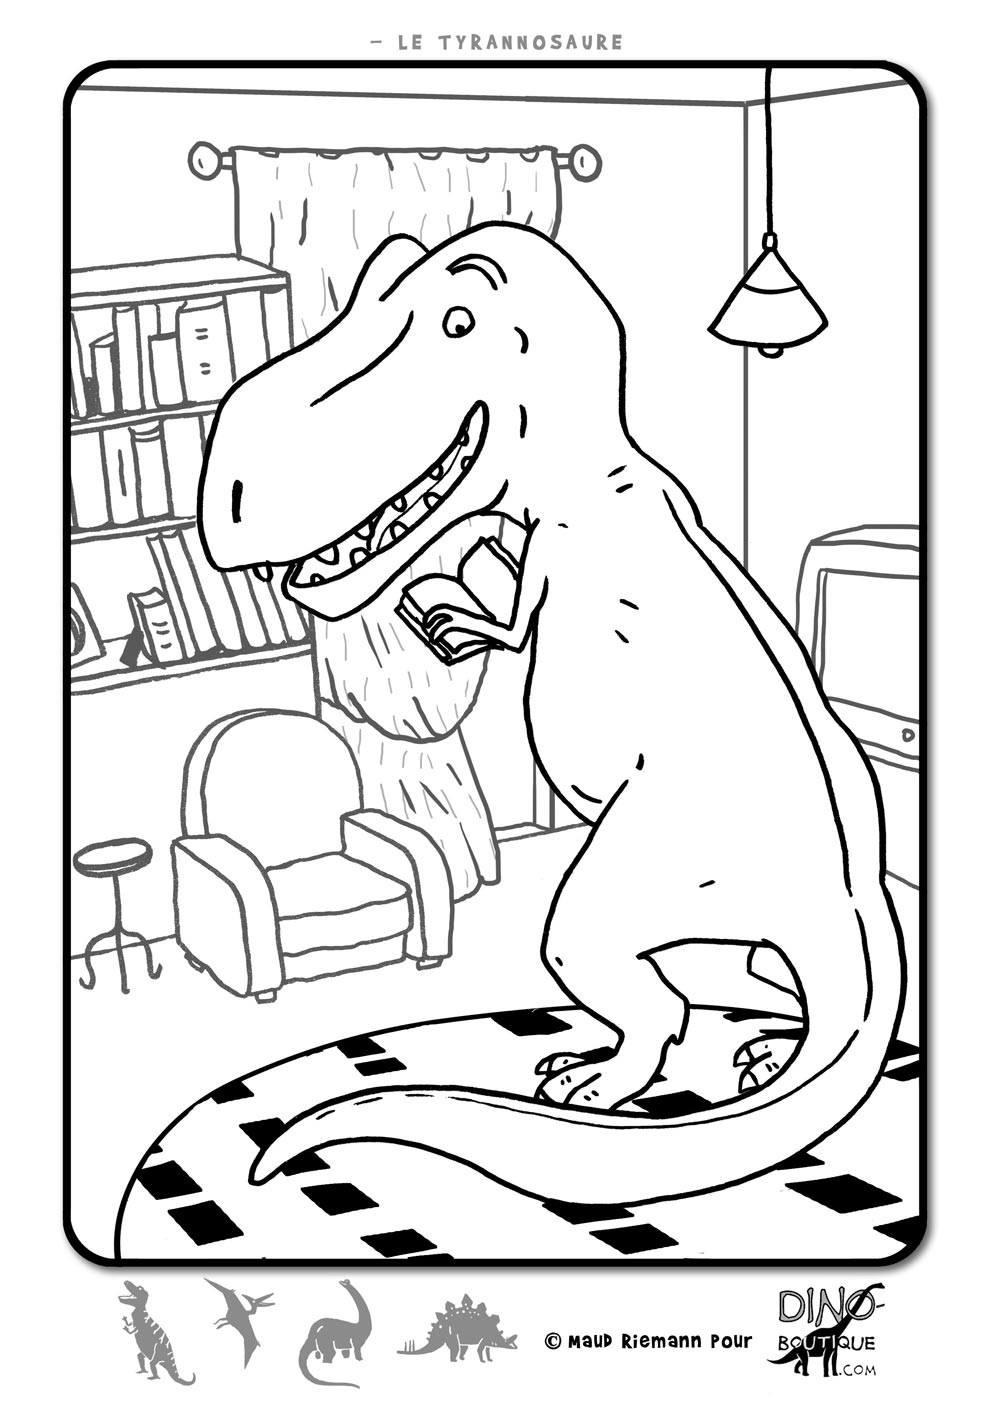 Dinosaurs coloring page with few details for kids : Funny T-Rex